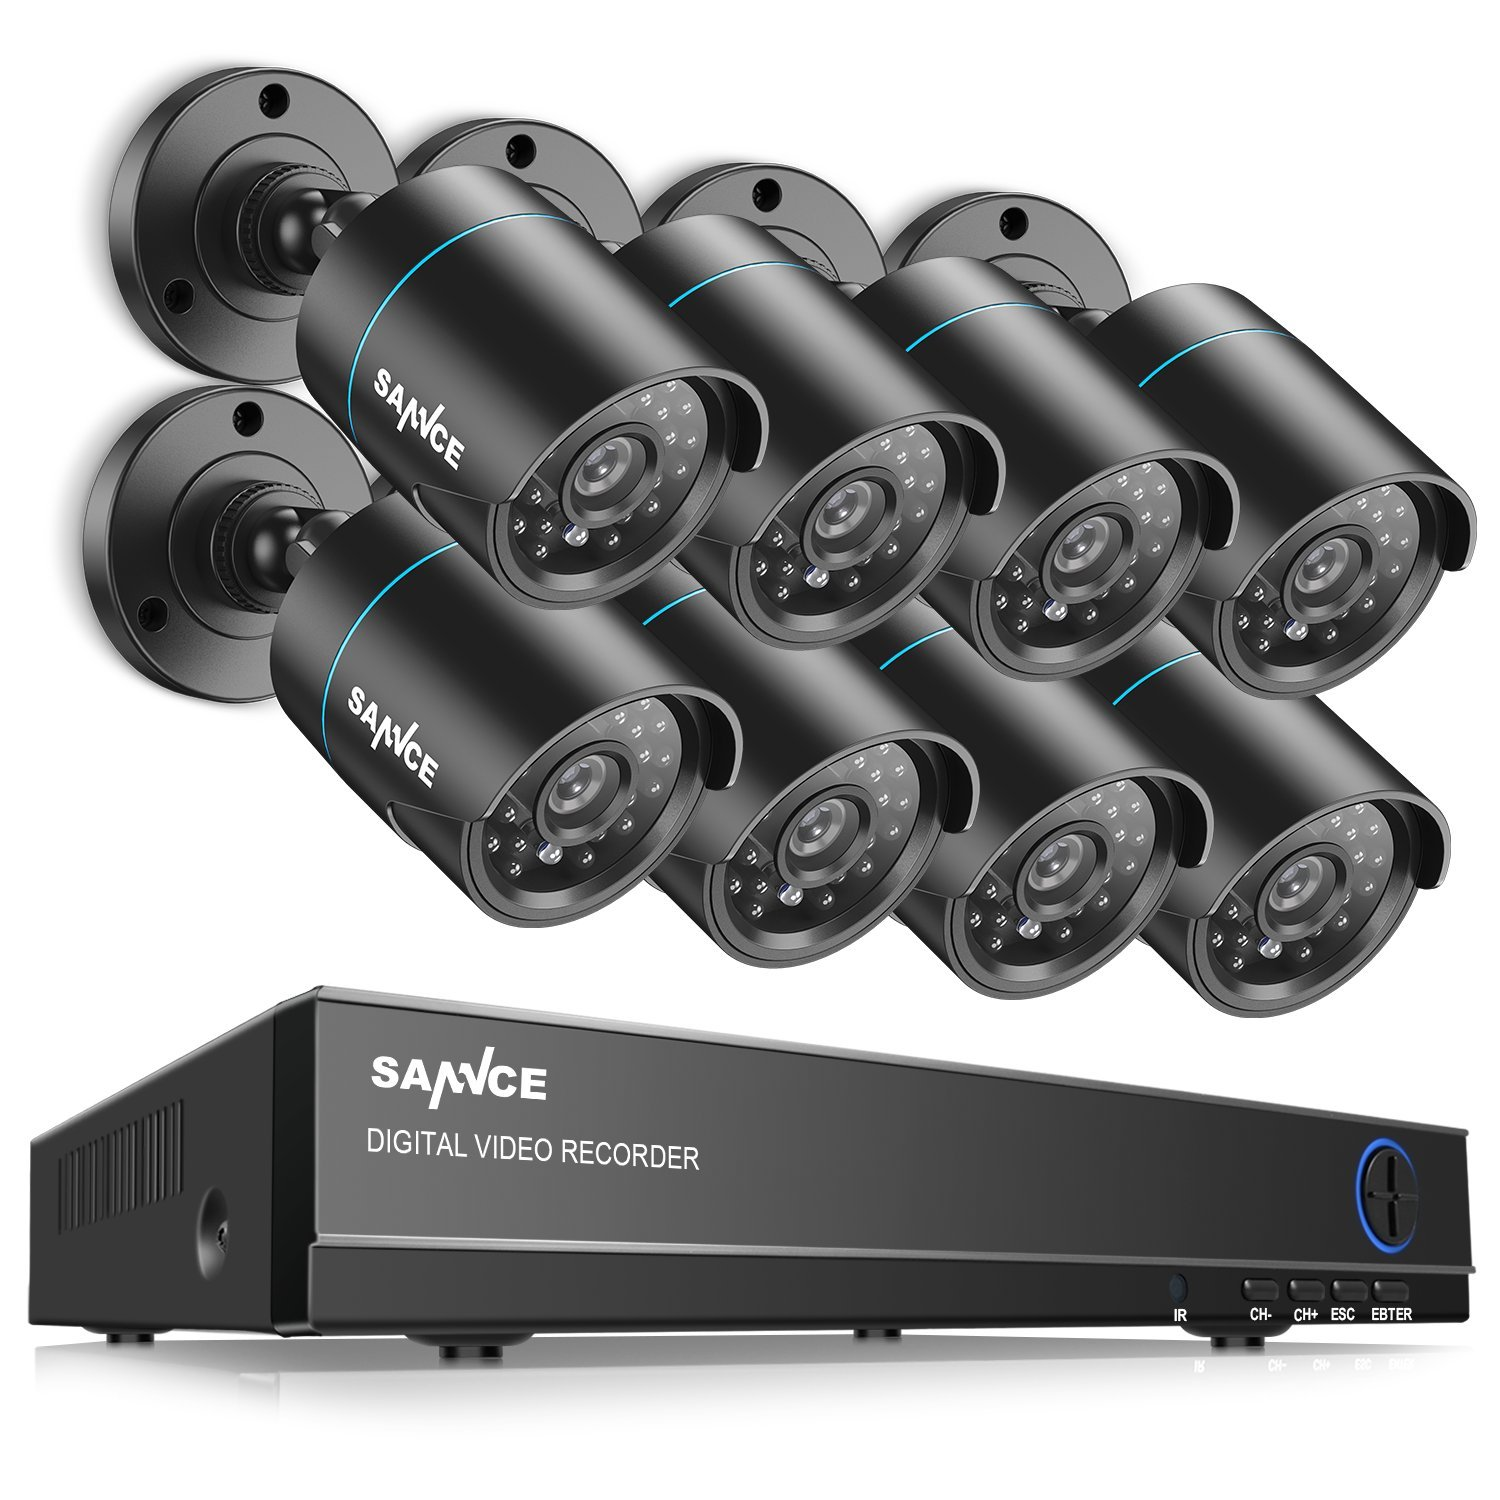 SANNCE 8CH Full 1080N Security Camera System CCTV DVR and (8) 720P Night Vision Surveillance Cameras, IP66 Weatherproof, QR Code Scan and Remote Access -No HDD